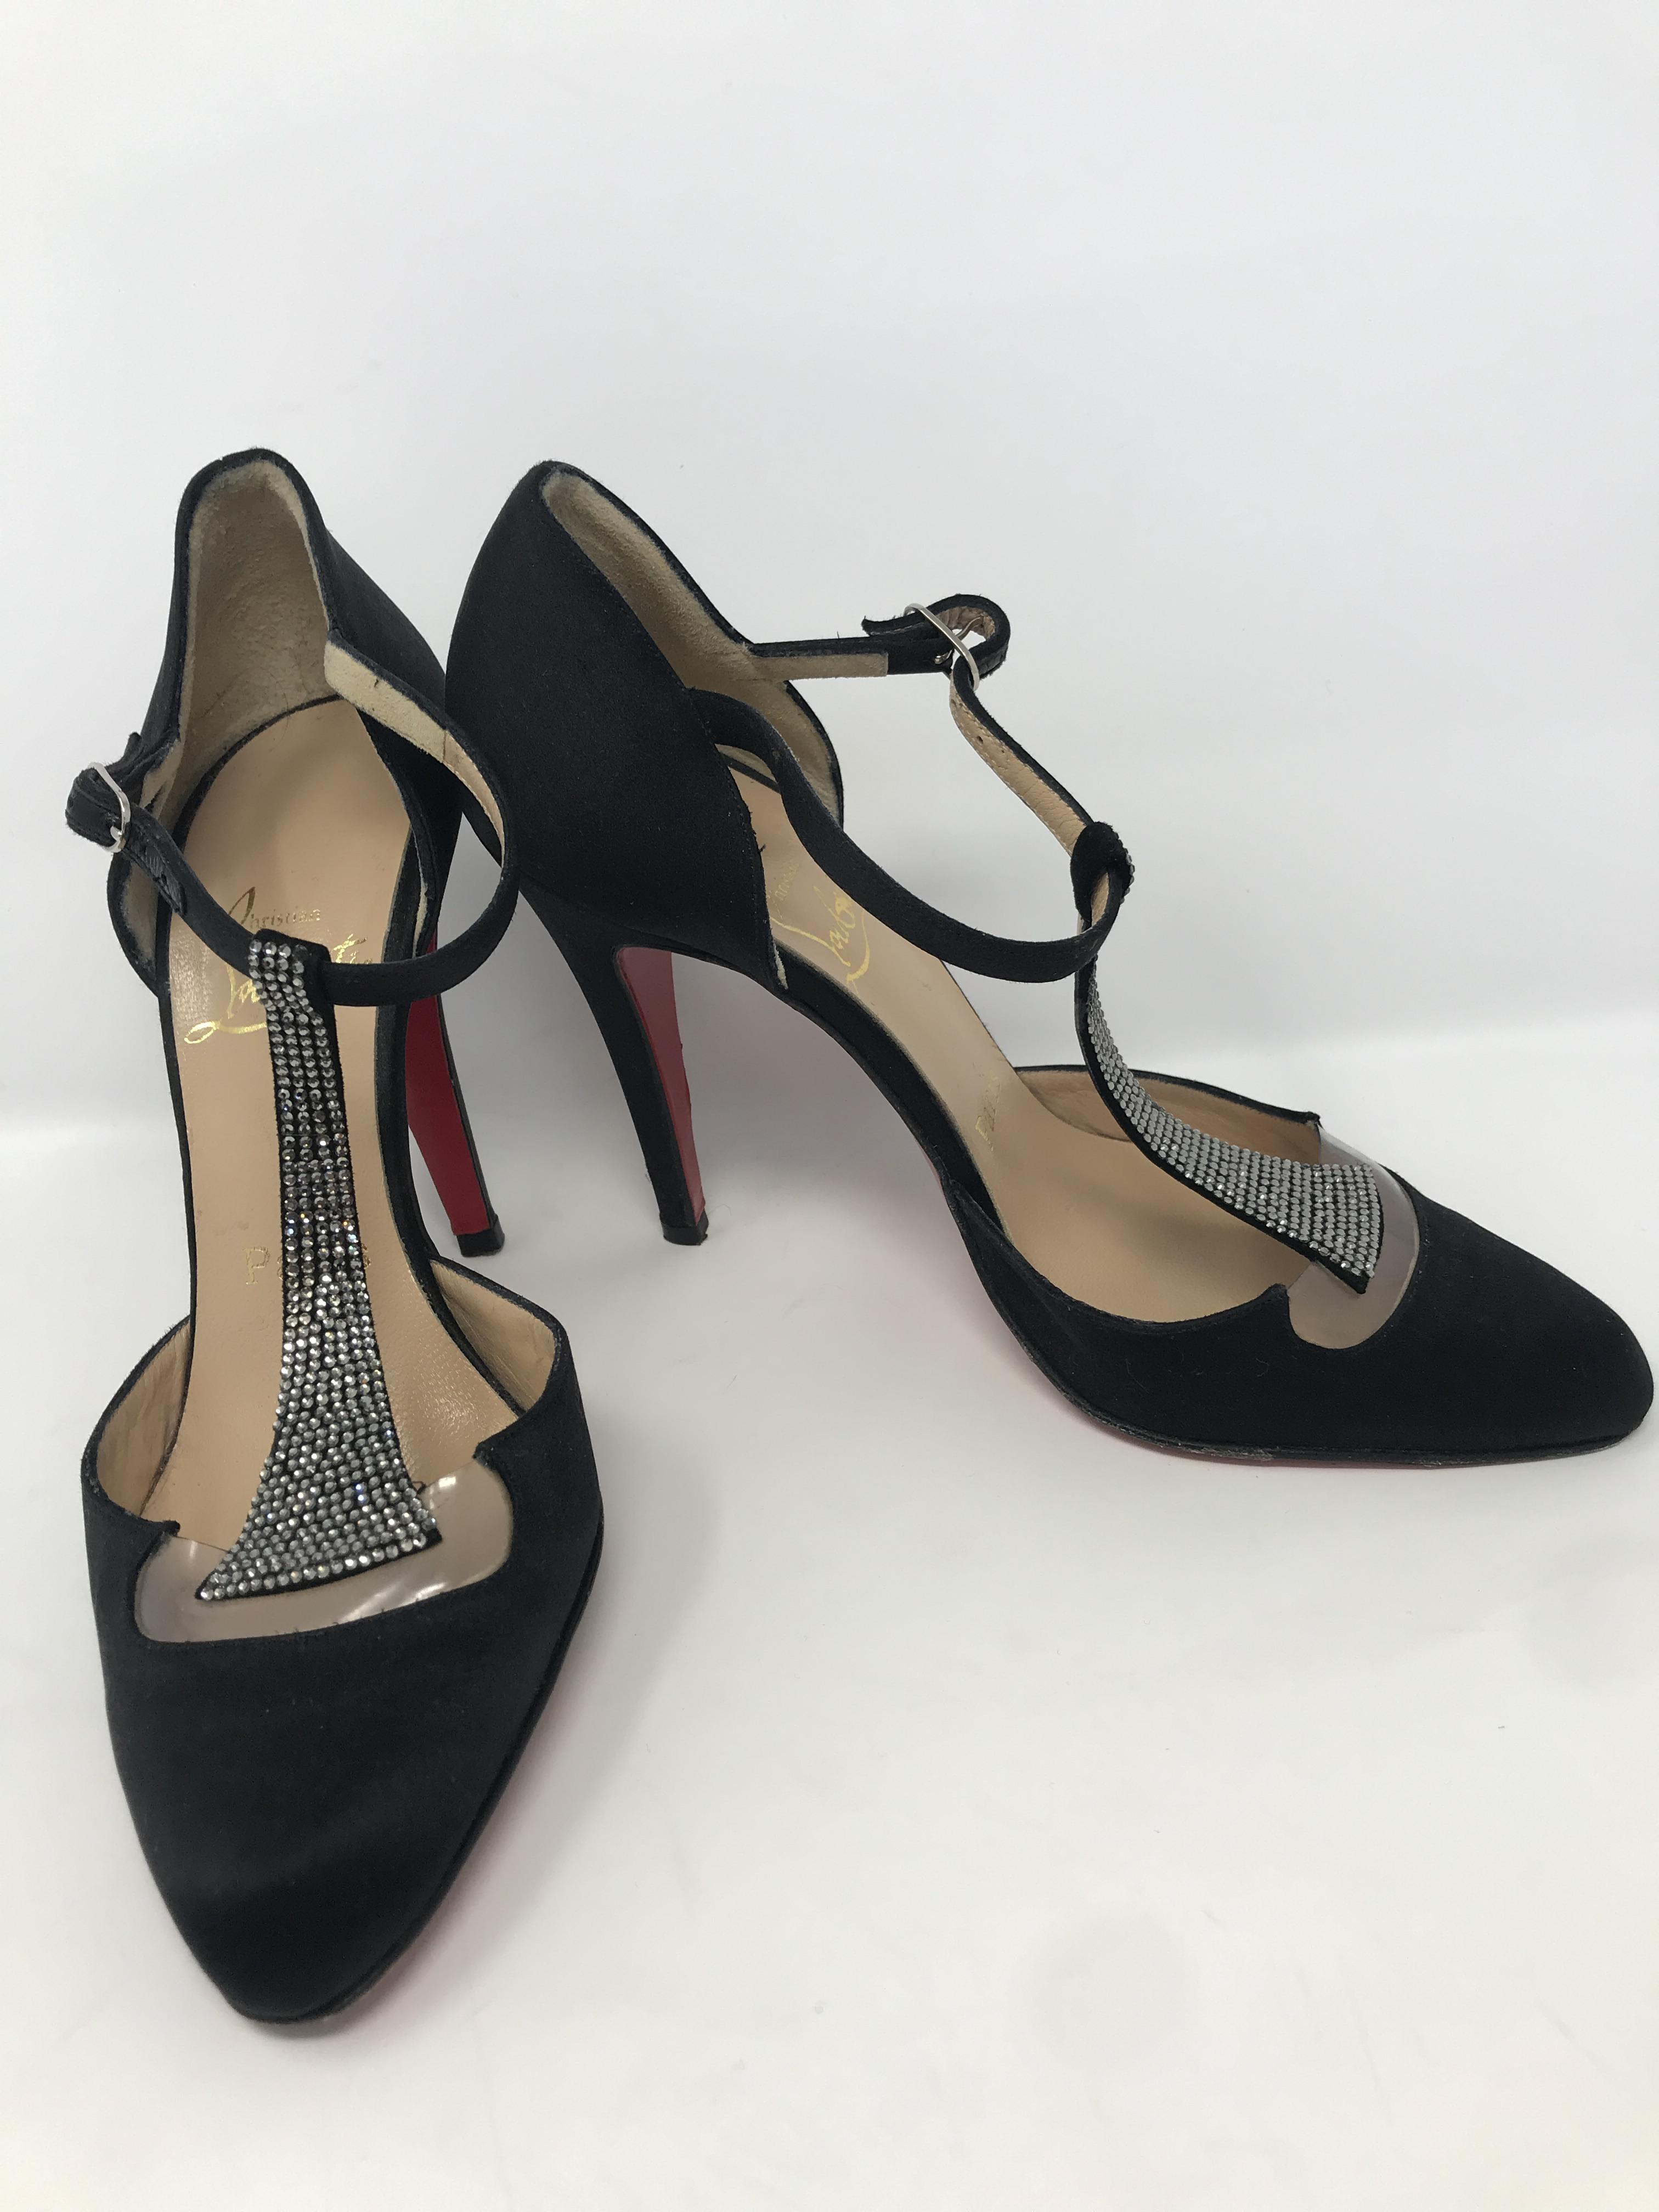 Louboutin black Shoes Price: $298.99